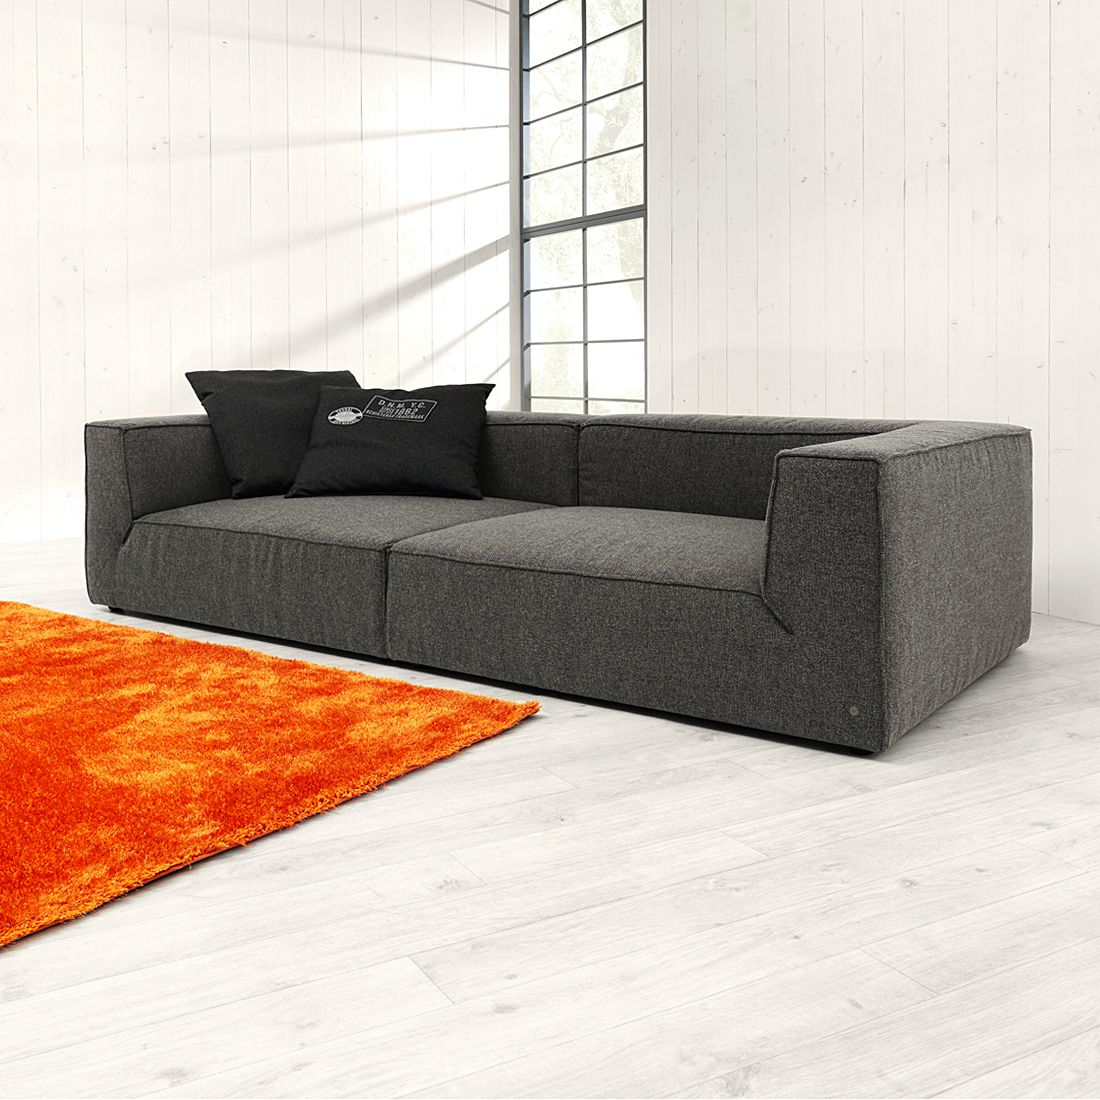 Couch anthrazit interesting couch anthrazit with couch for Sofa ohne kissen